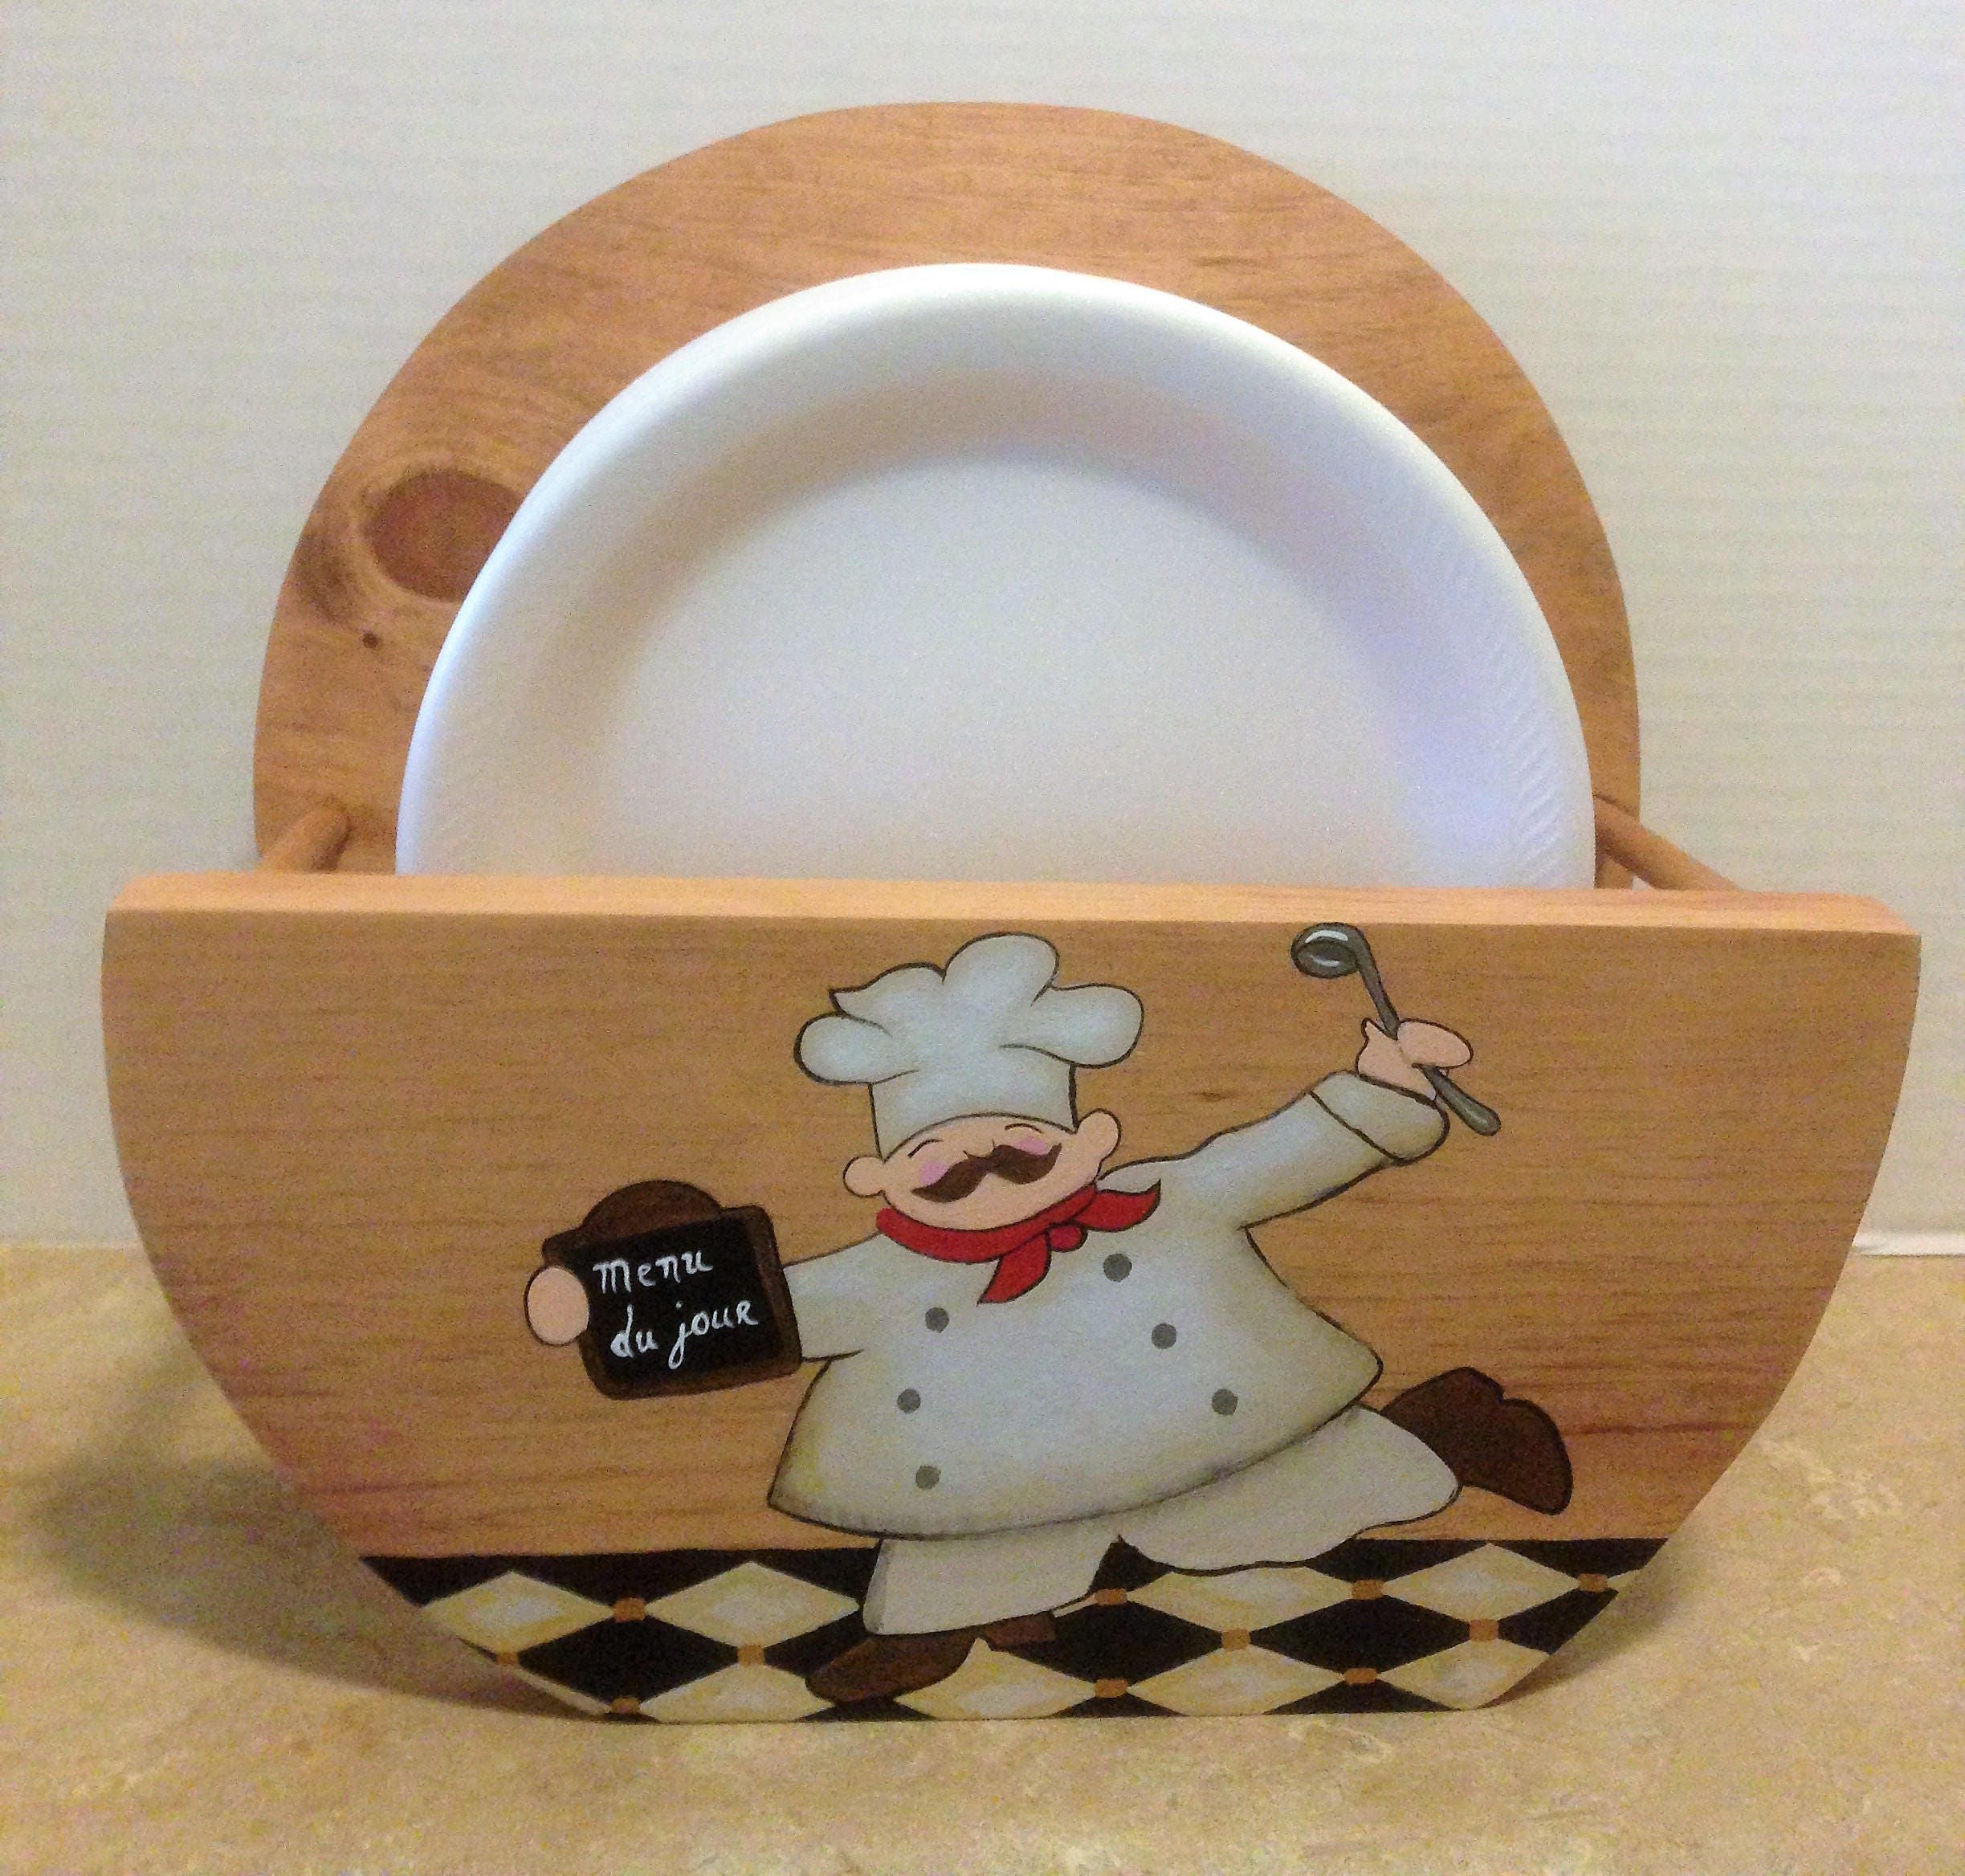 Paper plate holder chef decor chef kitchen decor holder for plates wooden plate holder chef theme chef kitchen theme plate storage